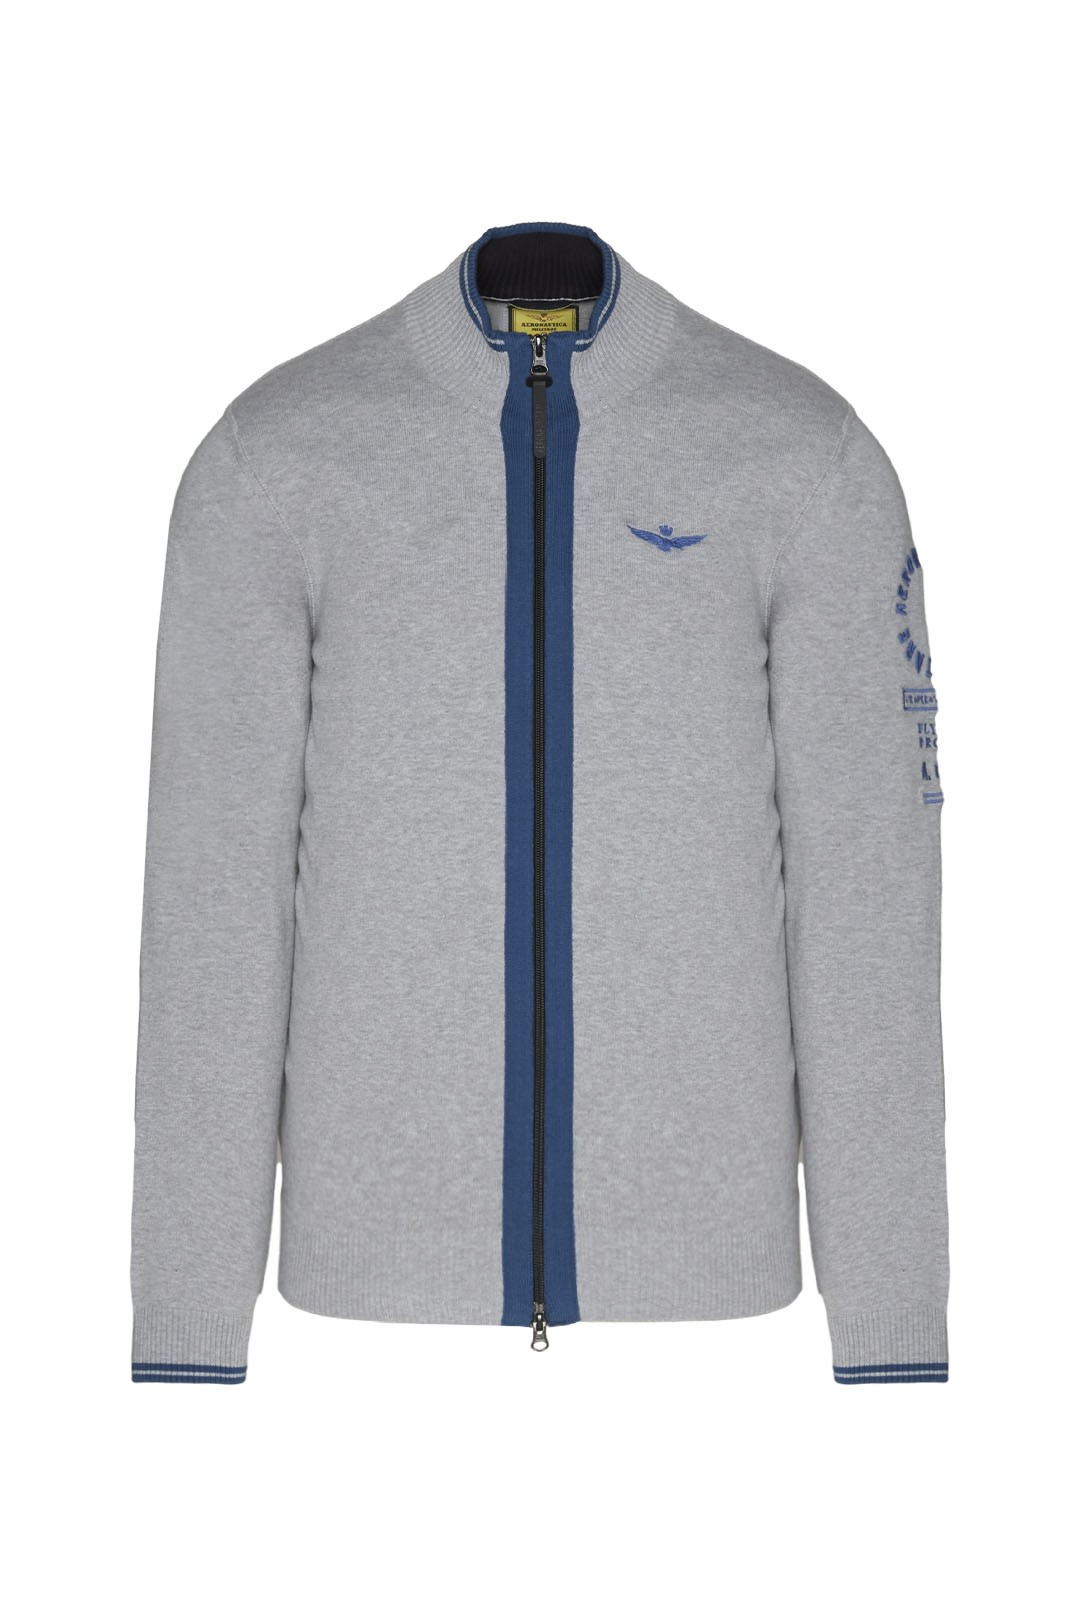 Fullzip sweater with contrasting details